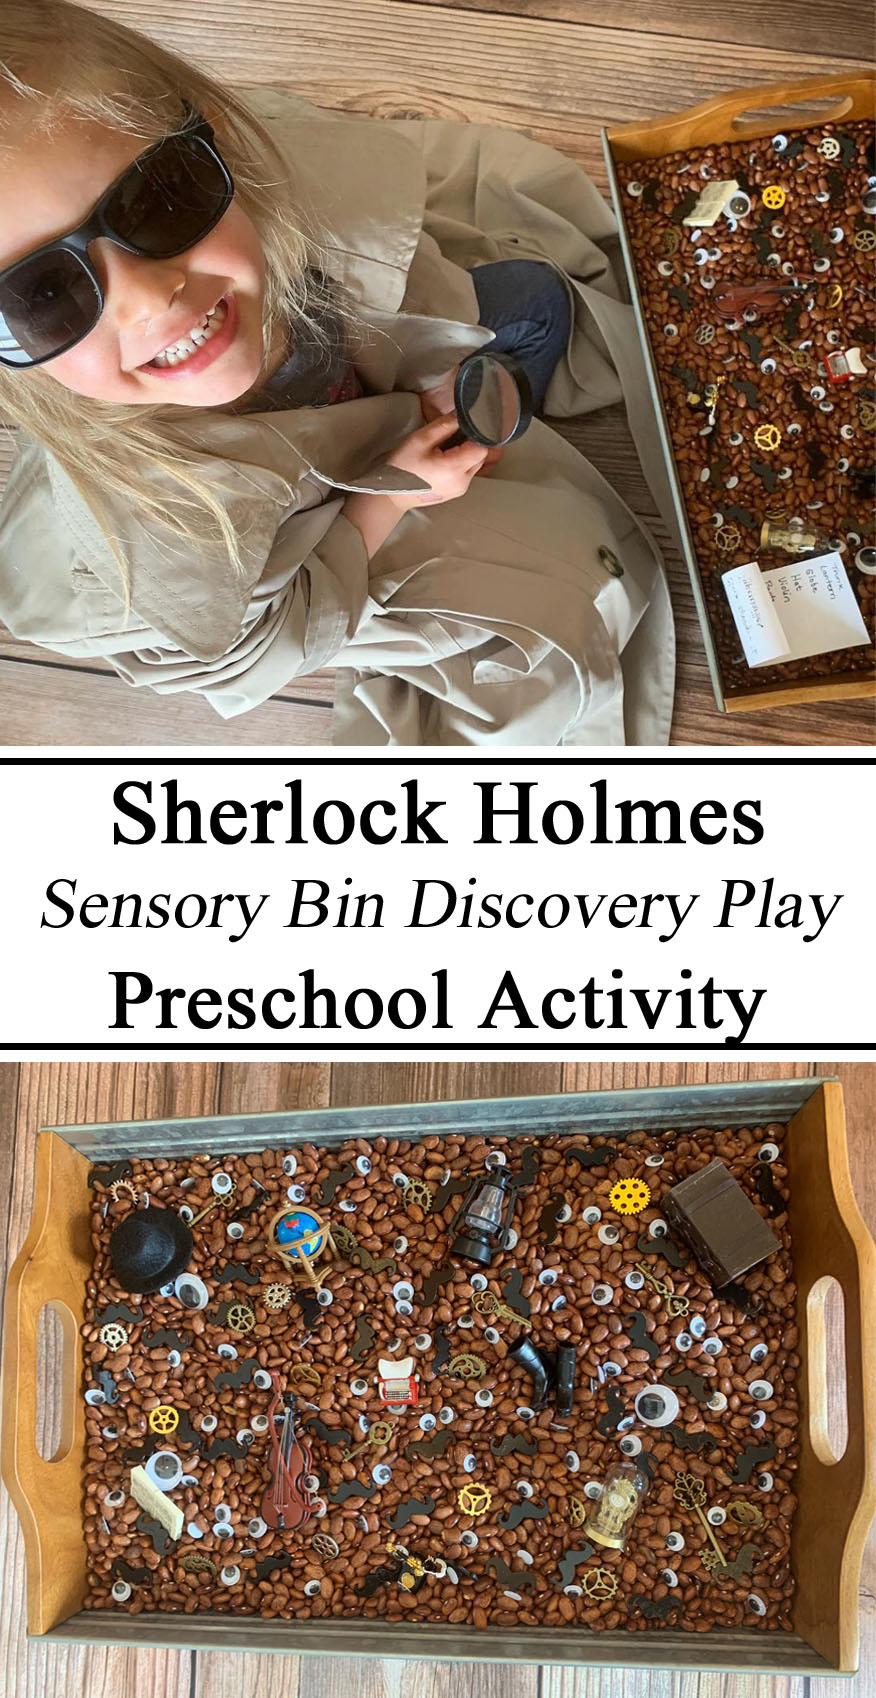 Homeschooling, Homeschool, Unschooling, Ideas, Inspiration, Preschool, PreK, Kindergarten, Hands on Learning, Sensory Play Bin Tray, Sherlock Homes Watson, Discovery Searching Clue Mystery Dollhouse miniatures, Victorian Era, Spy, Private Eye, Resources Teachers Parents, Early Childhood Education STEAM STEM Education Learning Learn Waldorf Montessori